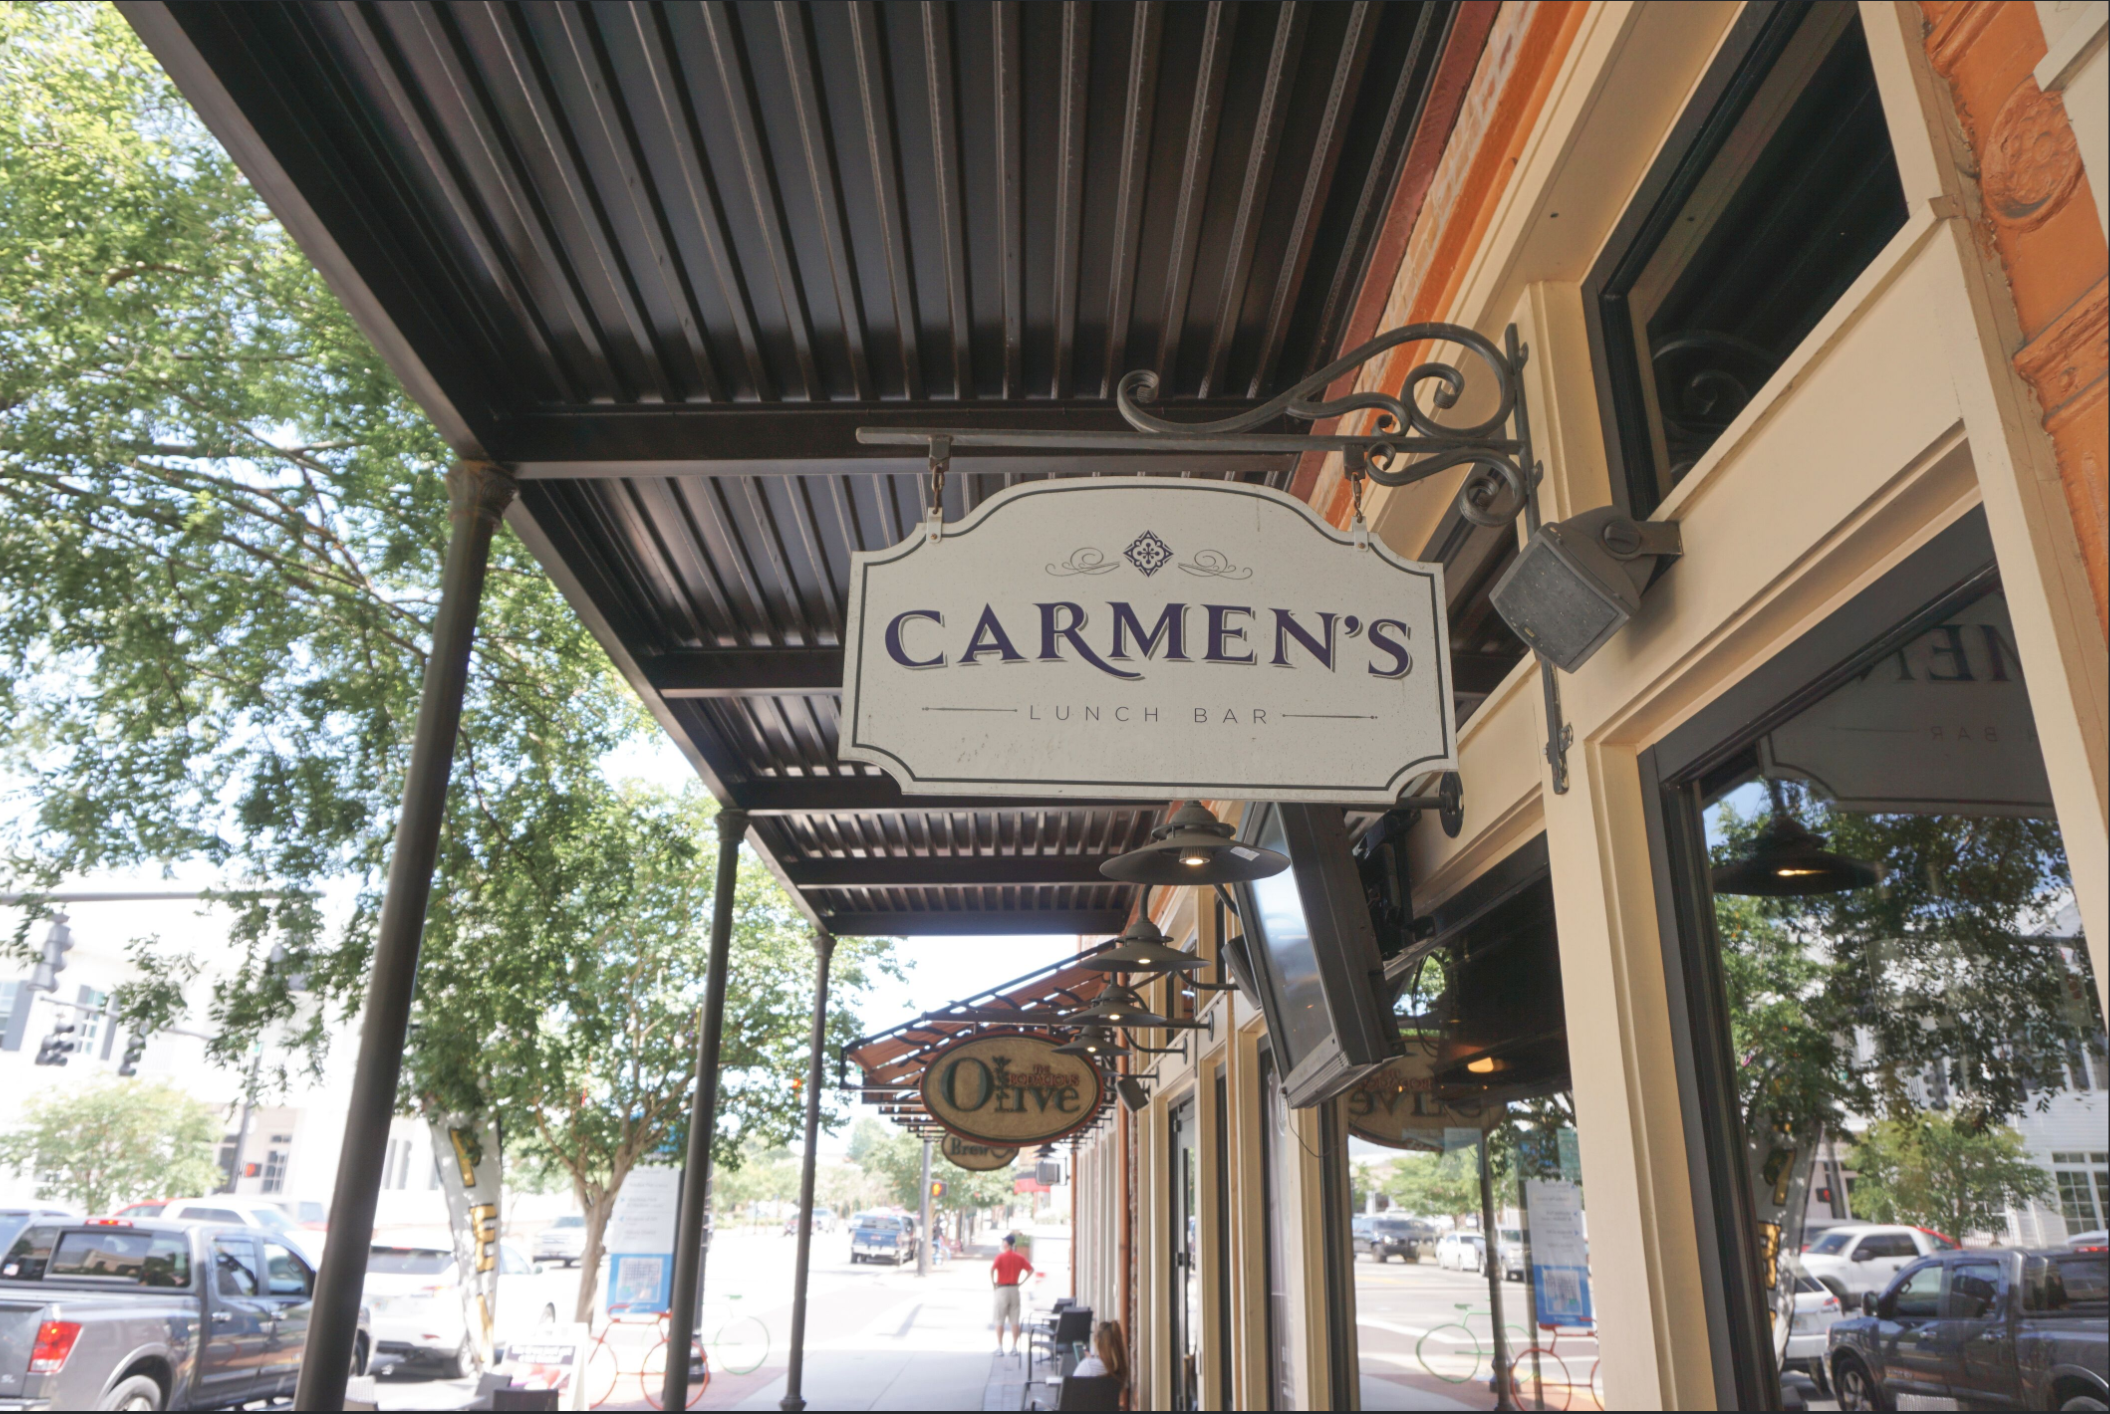 Carmen's Lunch Bar  in downtown Pensacola